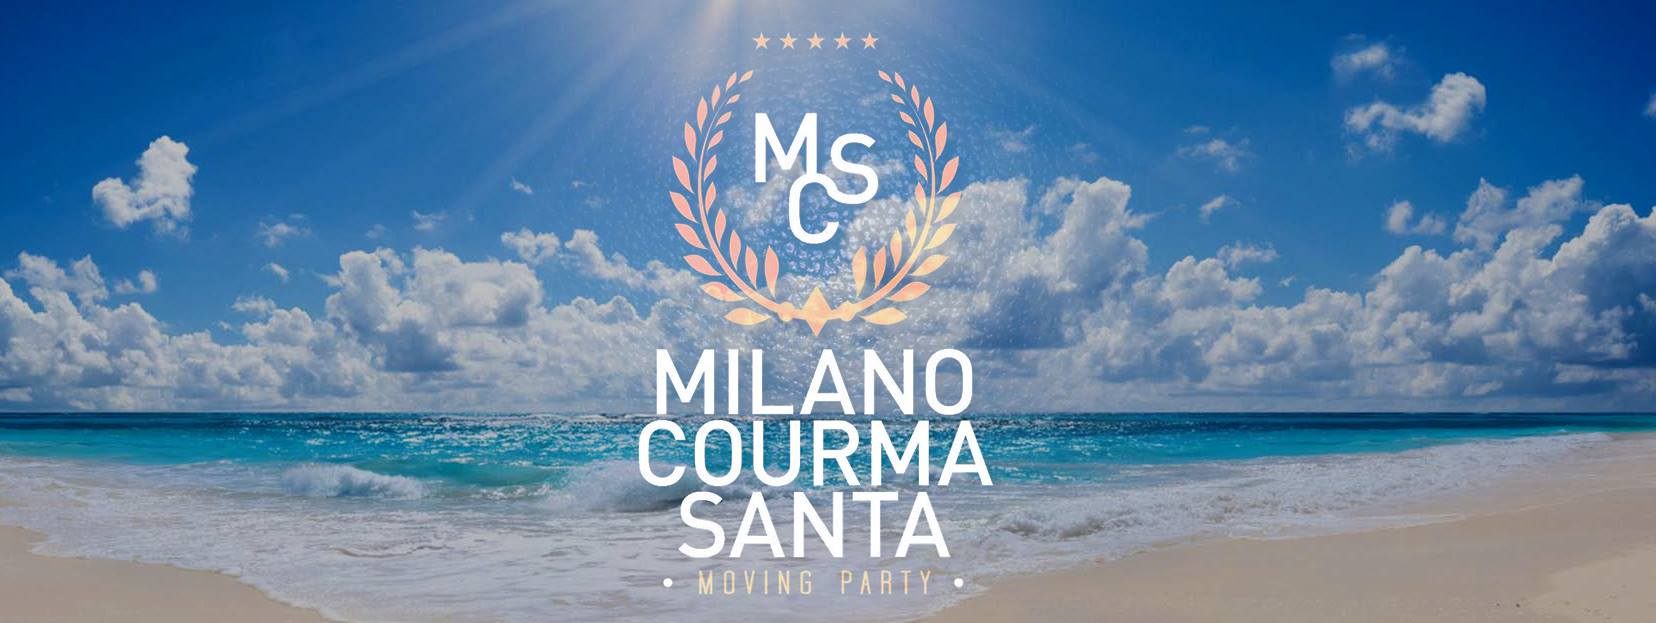 Milano courma santa mcs rally mare party